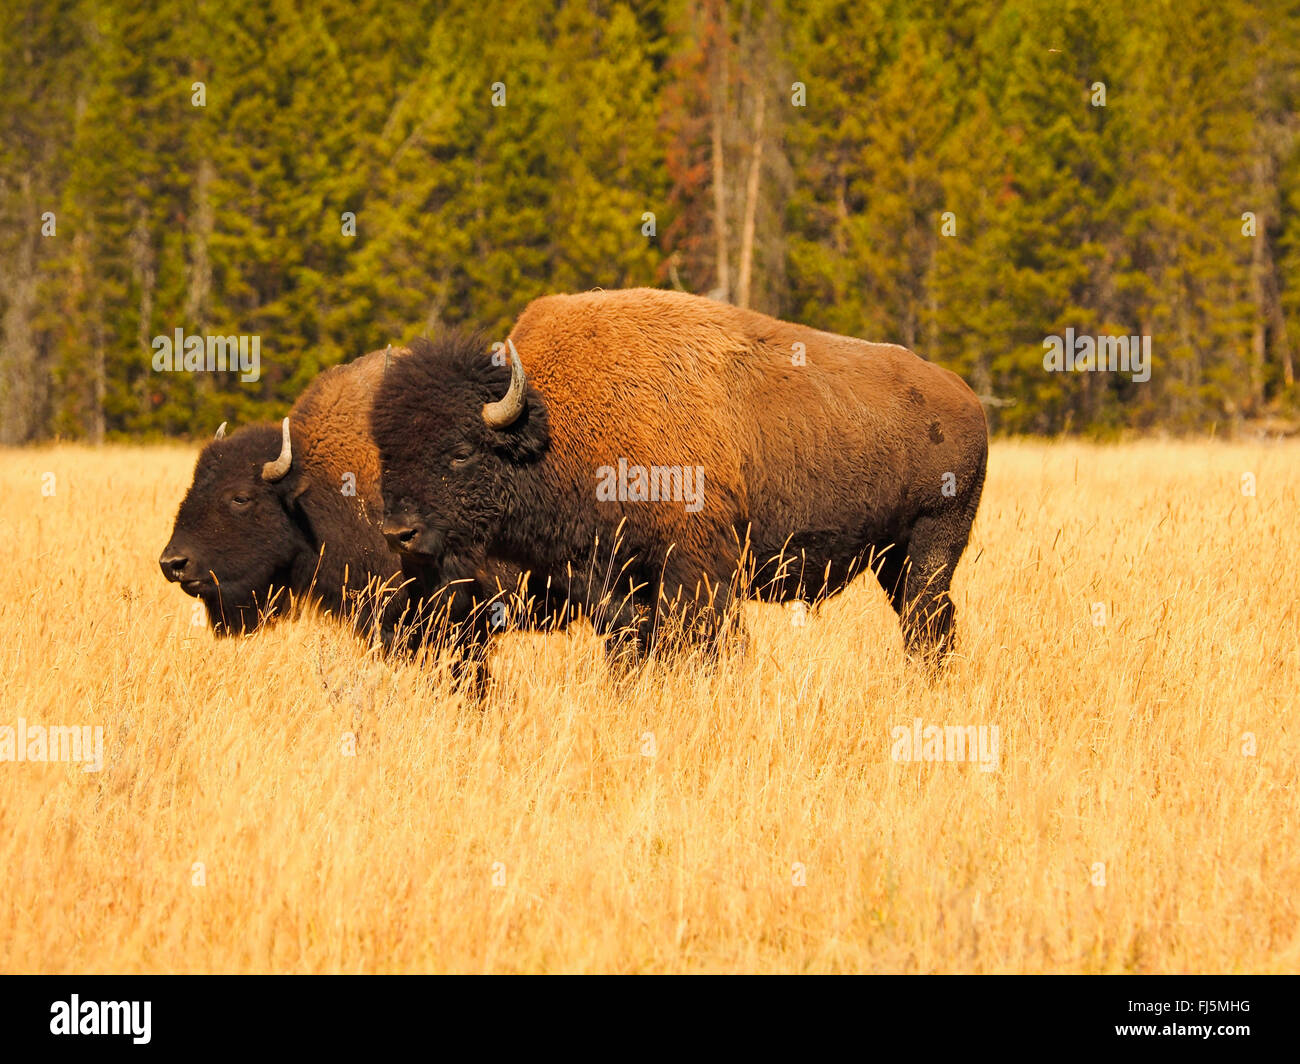 American bison, buffalo (Bison bison), bull and female in mating season, USA, Wyoming, Yellowstone National Park - Stock Image